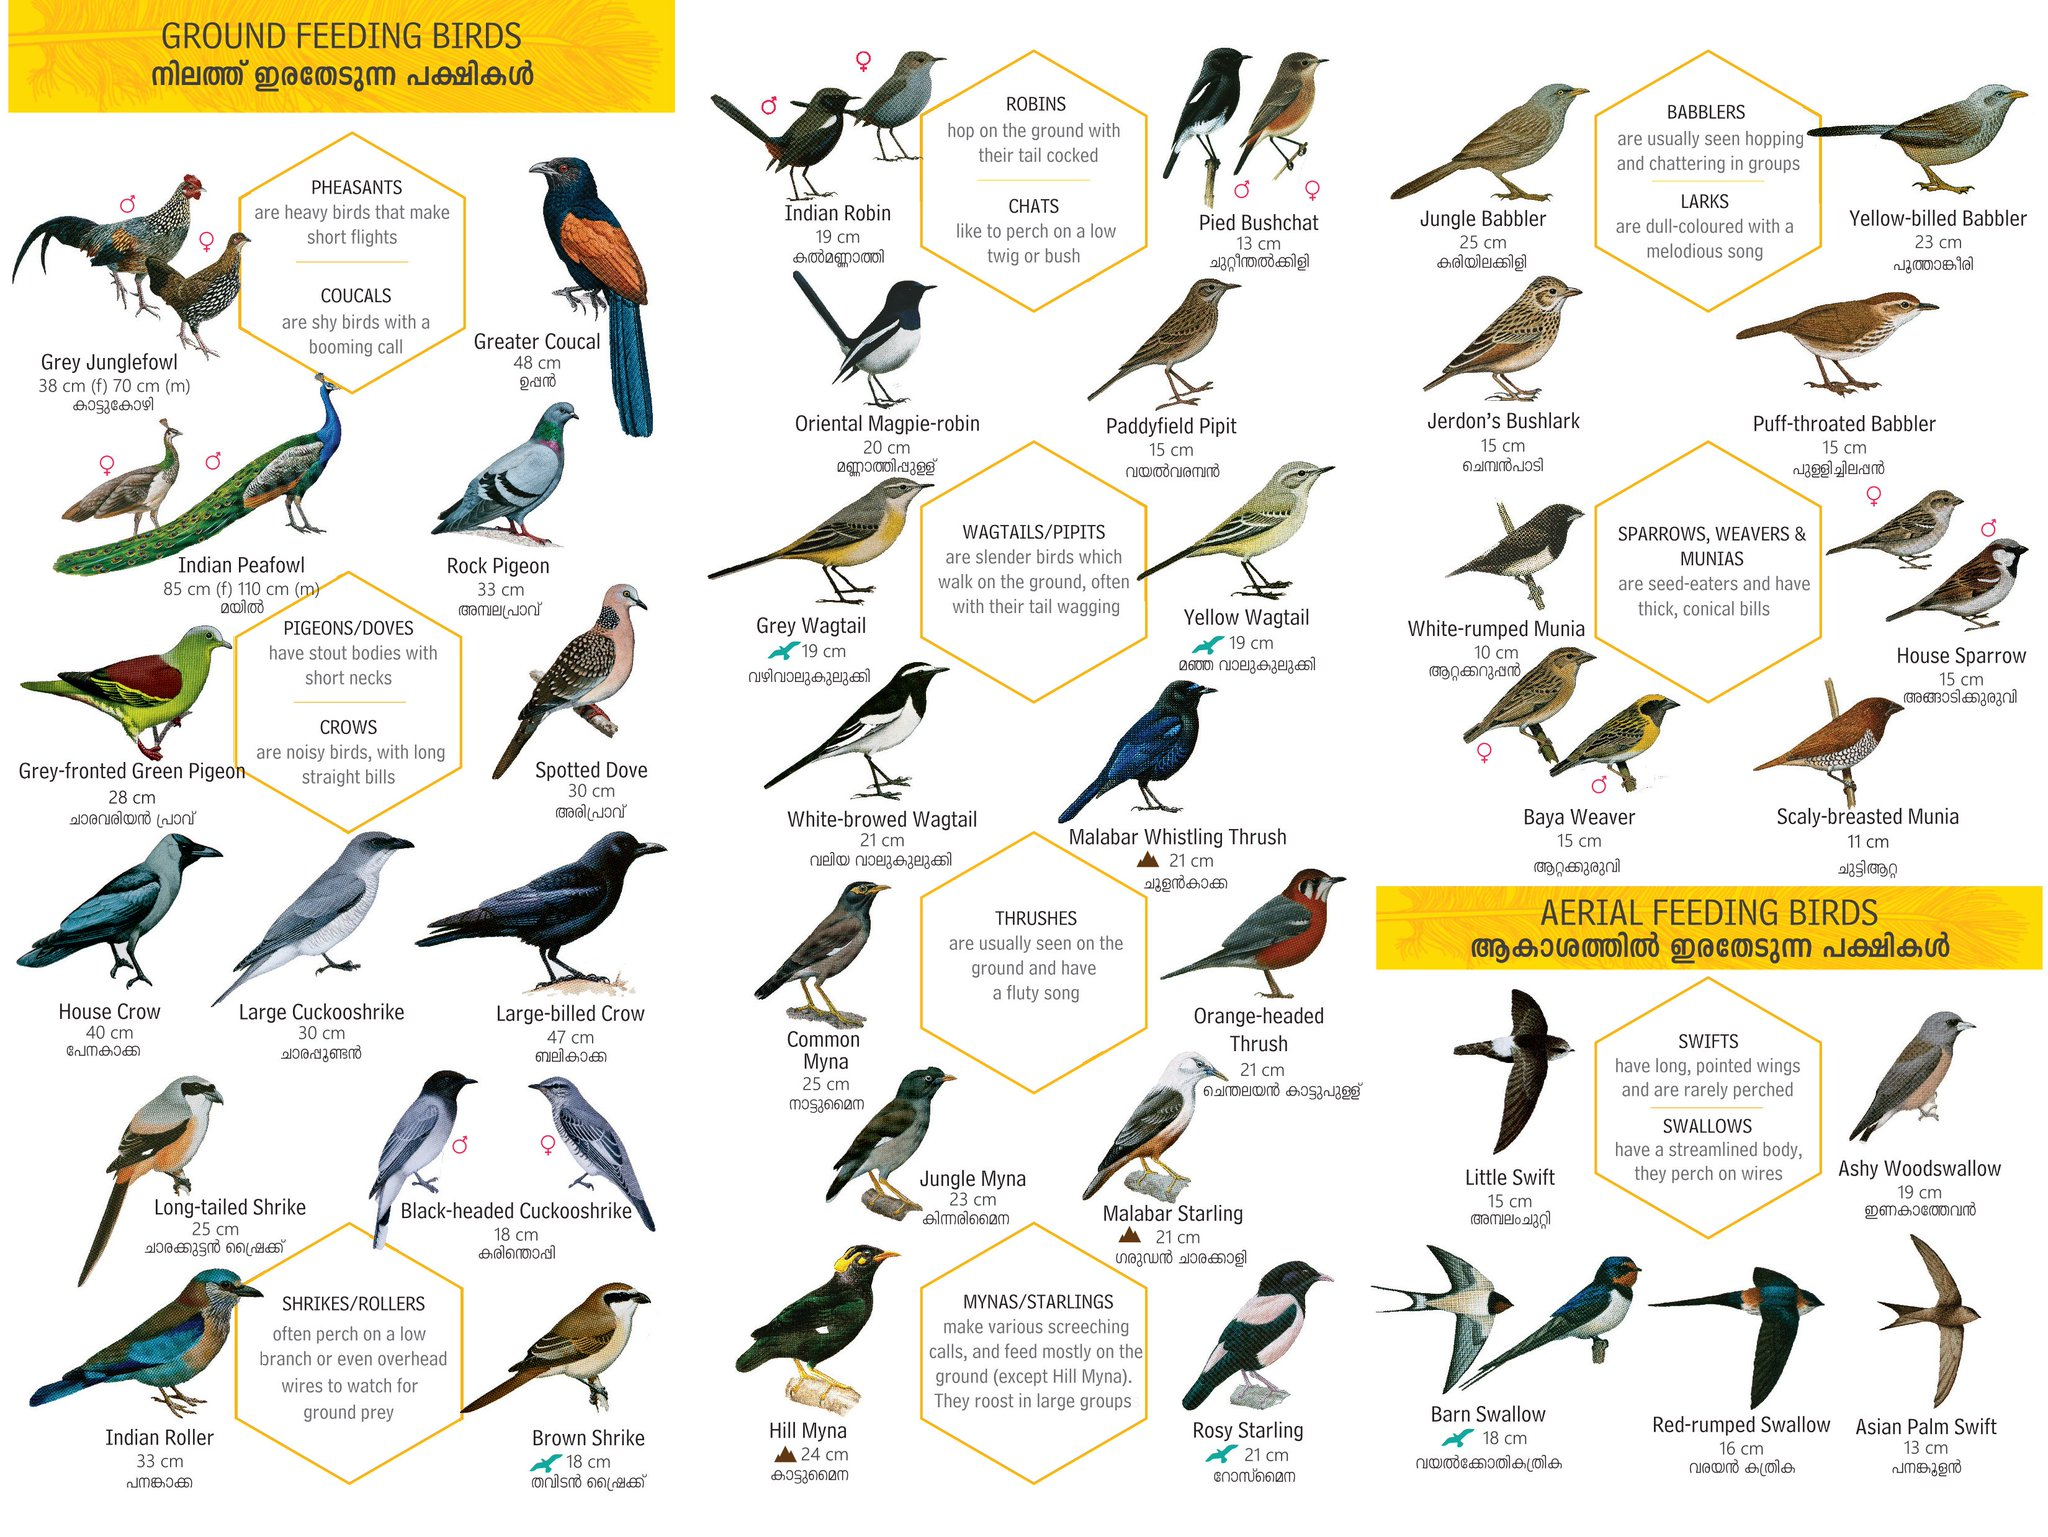 Nature Conservation Foundation On Twitter Featuring 135 Birds It Has Descriptions In English And Species Names In English And Malayalam